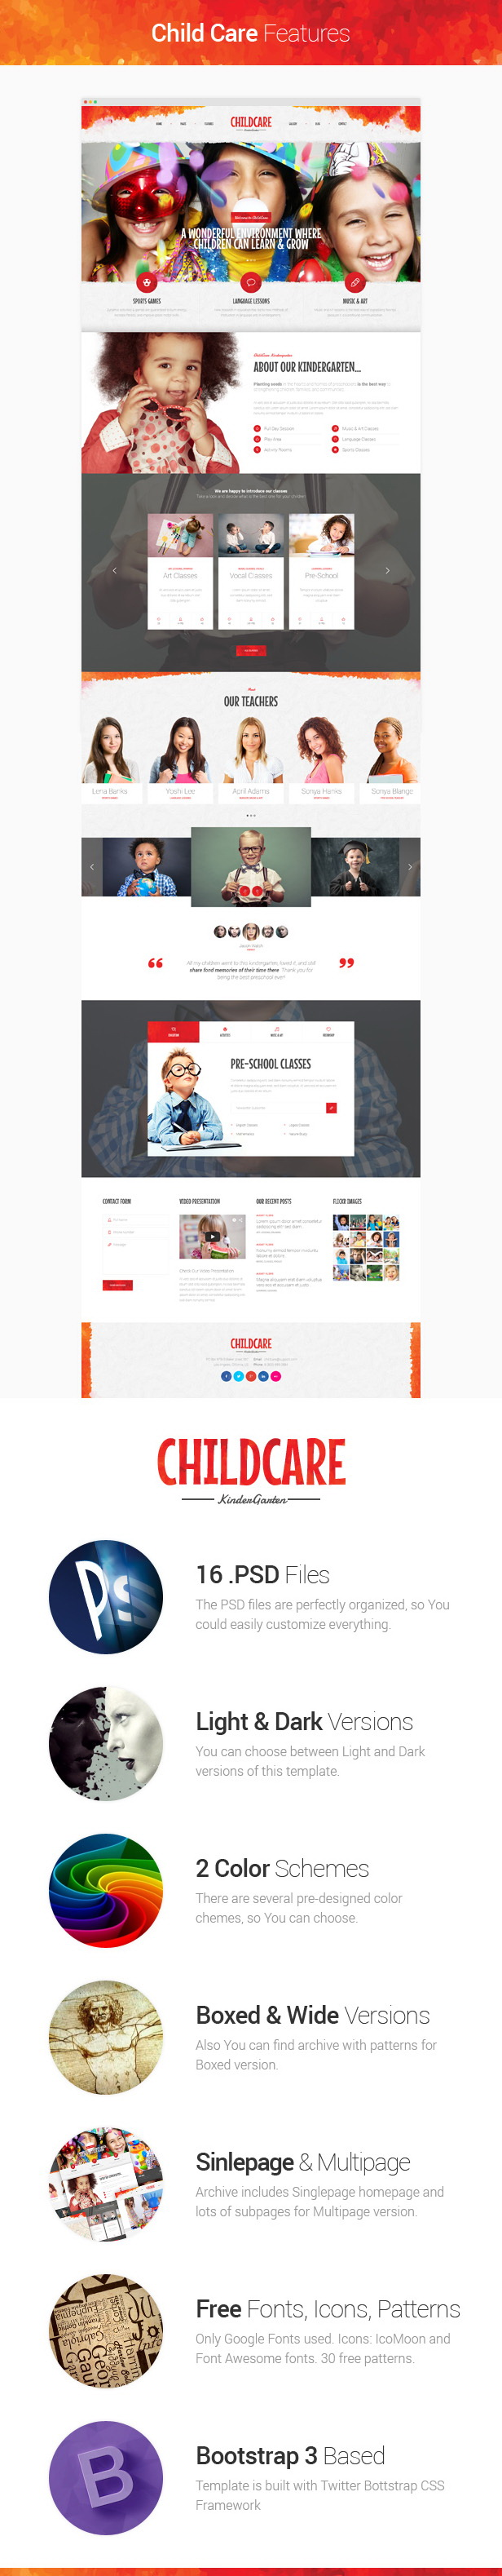 Child Care - Children & Kindergarten PSD Template description